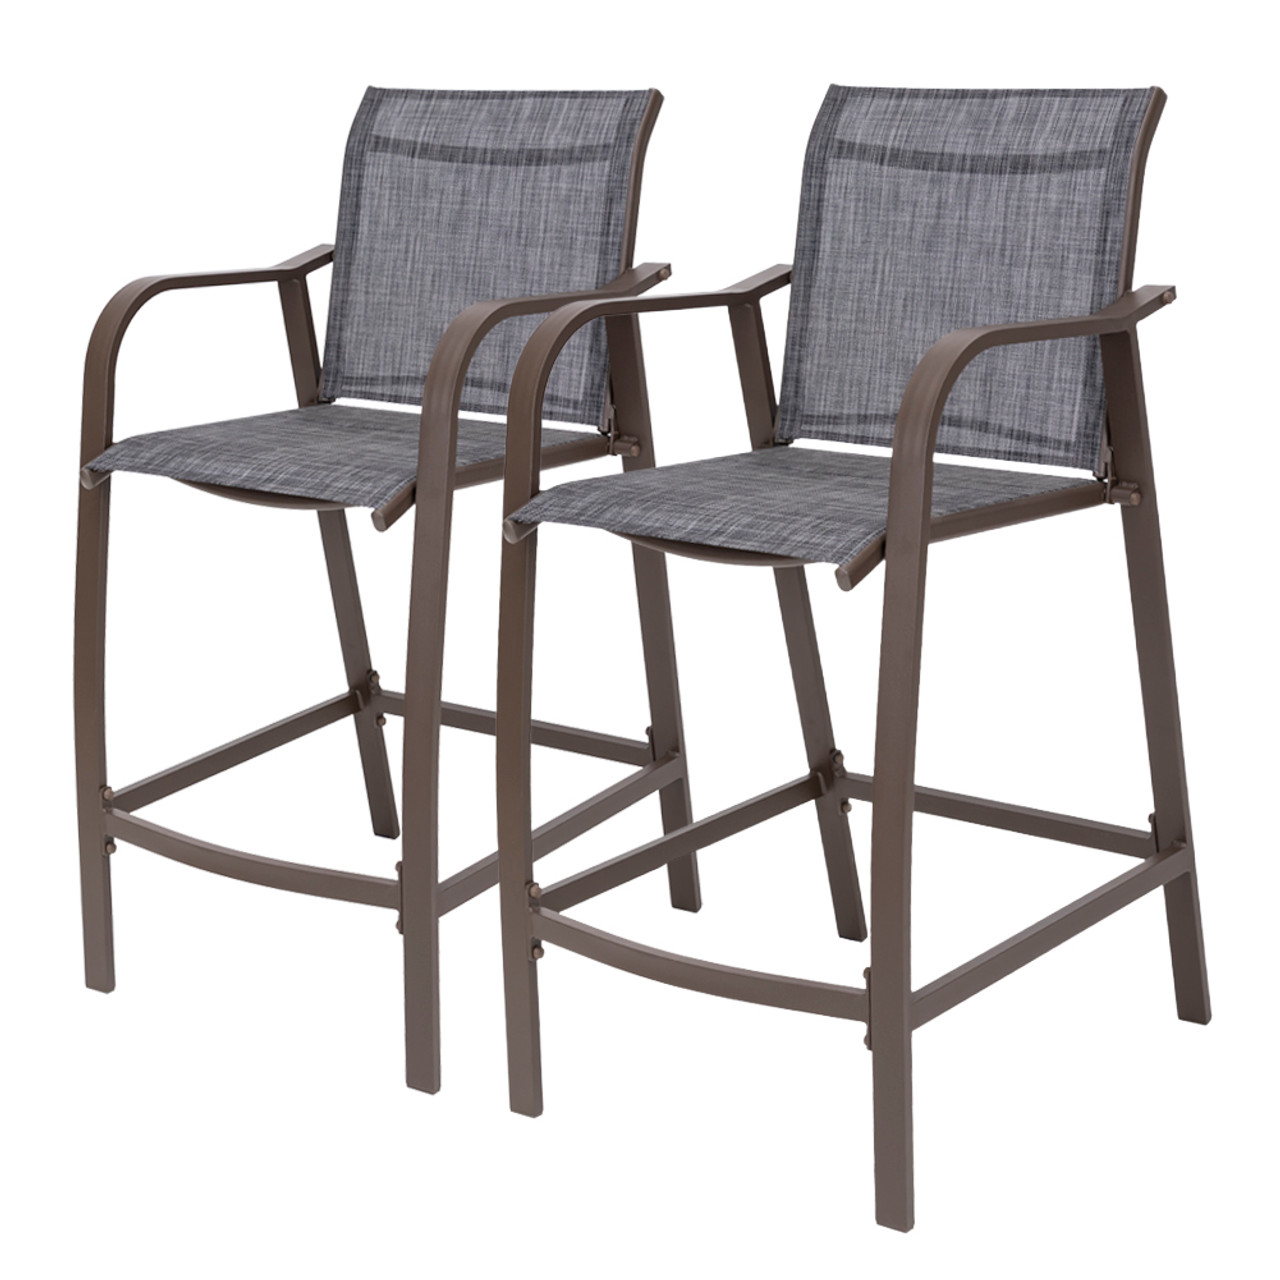 crestlive products 2 piece counter height bar stools all weather patio furniture